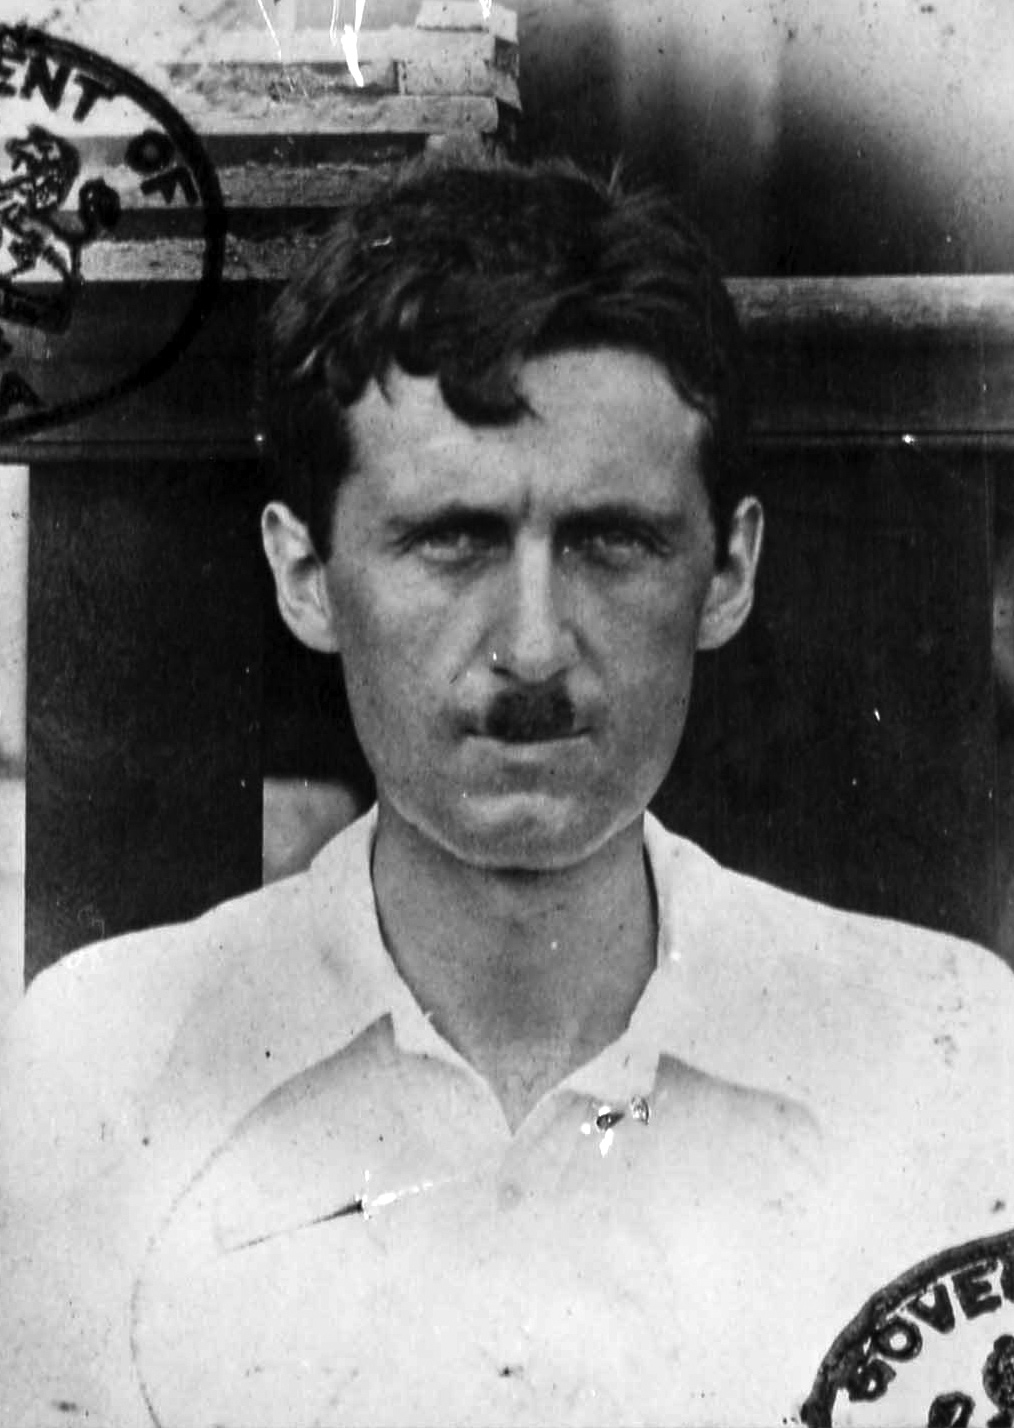 shooting an elephant  a passport photo of orwell taken during his time in the burmese police force